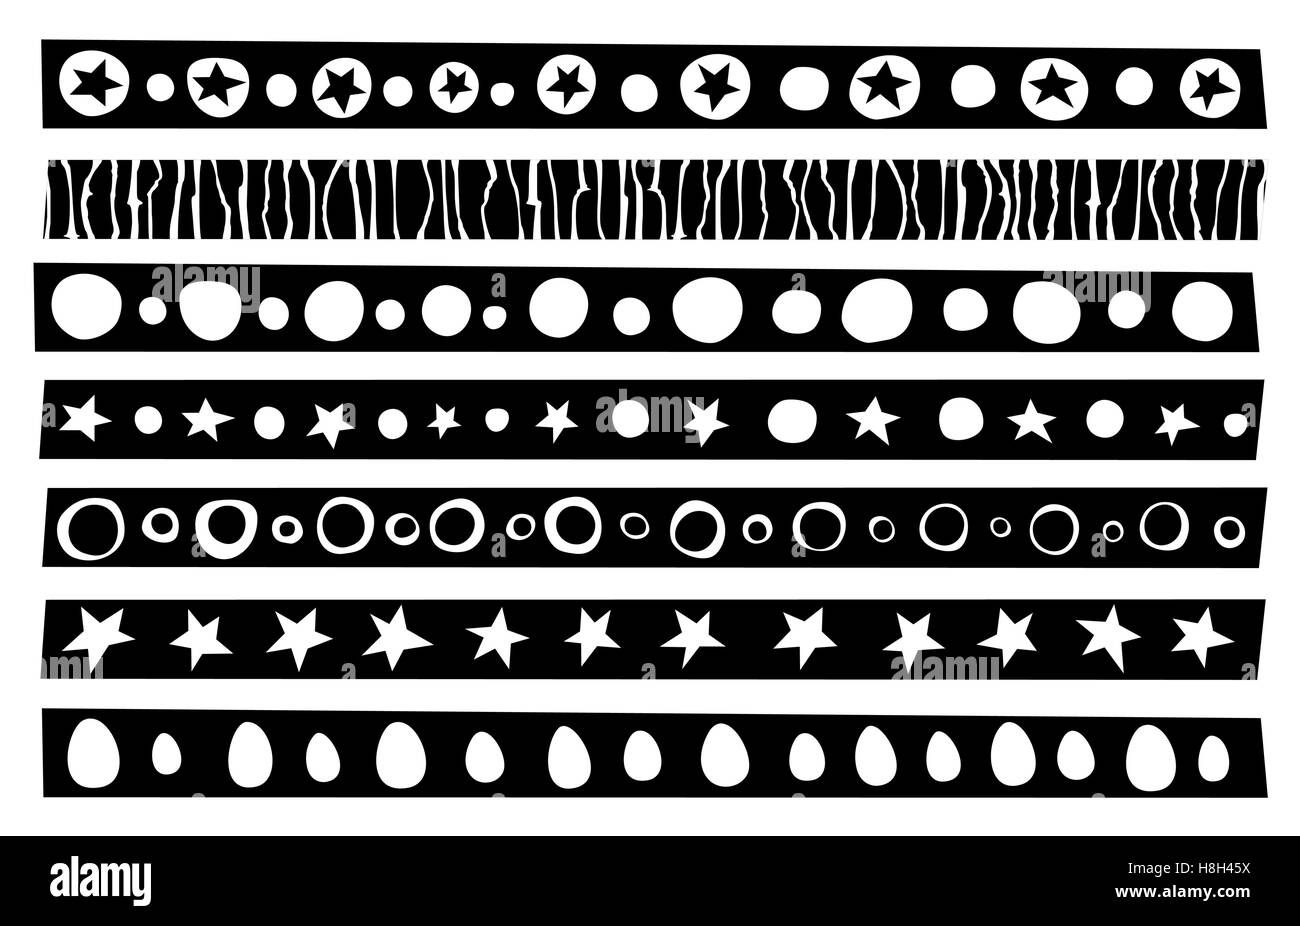 decorative border patterns collection in black over white - Stock Image